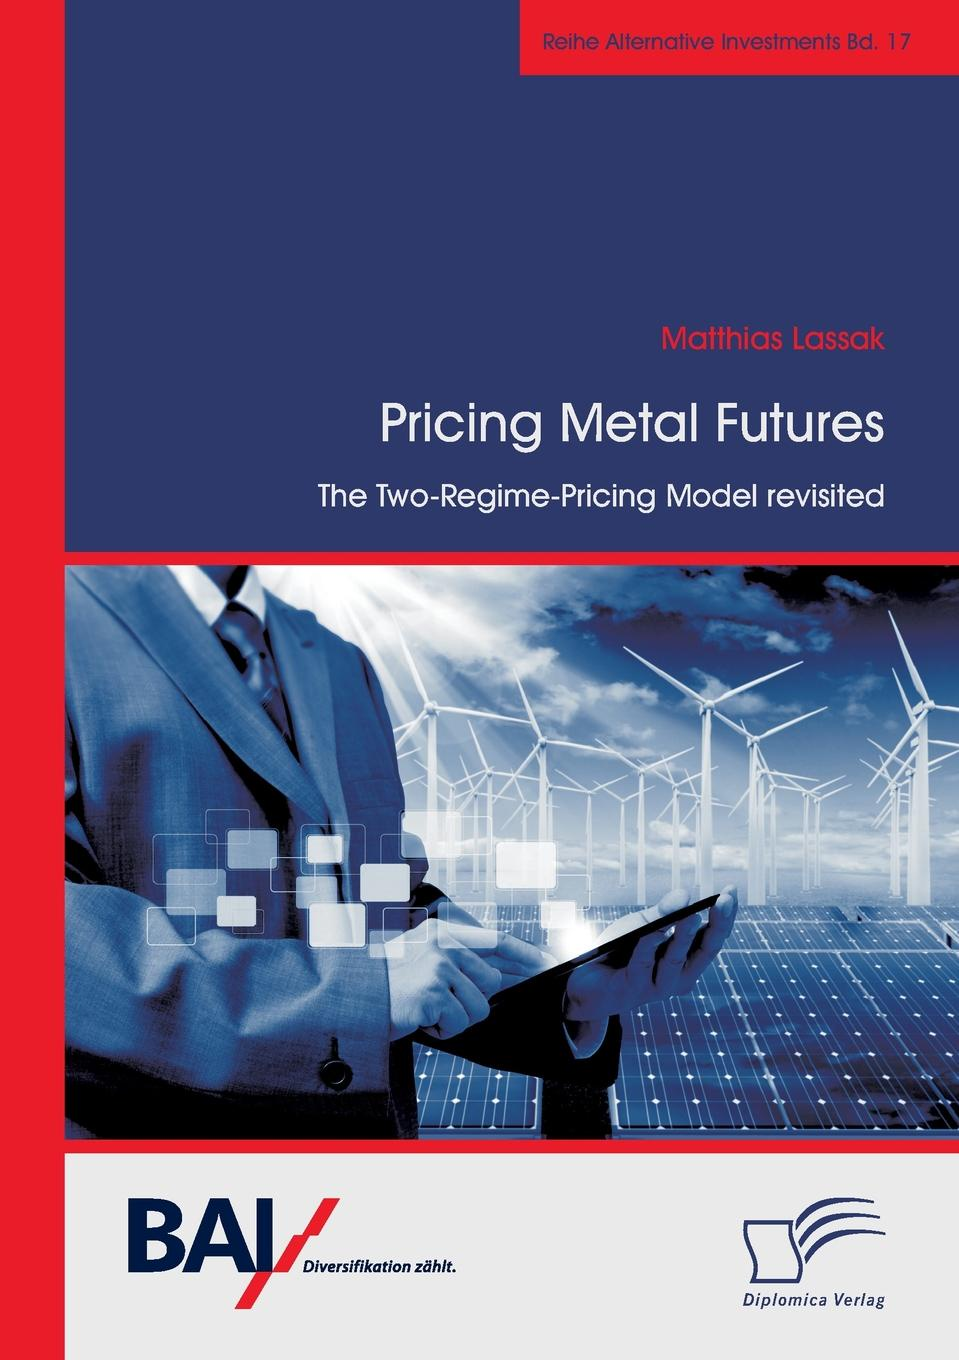 Matthias Lassak Pricing Metal Futures. The Two-Regime-Pricing Model revisited cooper rachel constructing futures industry leaders and futures thinking in construction isbn 9781444327847